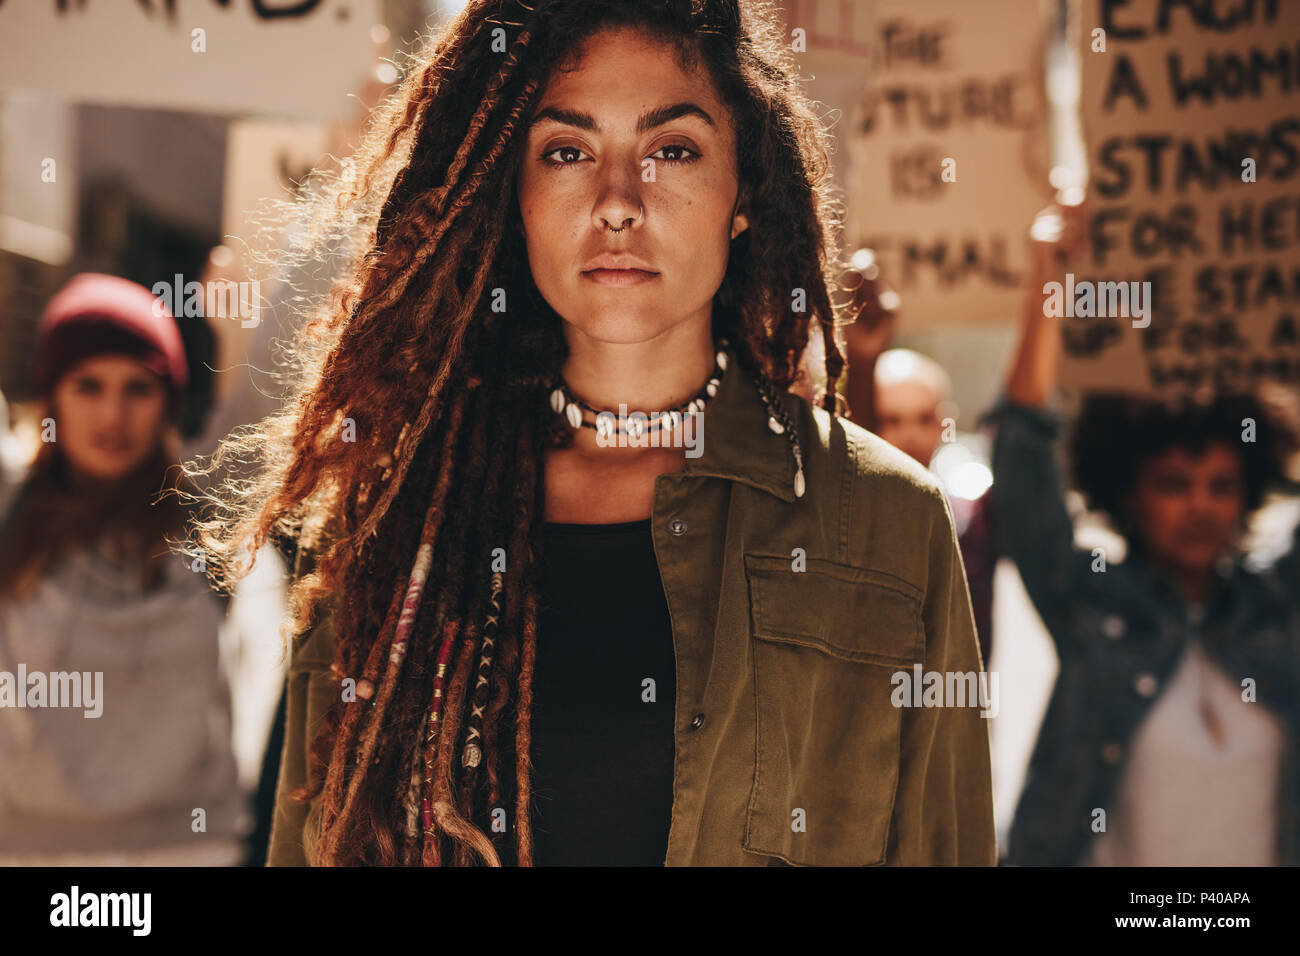 Woman standing outdoors in front of demonstrators on road. Female protesting with group of activists outdoors. - Stock Image